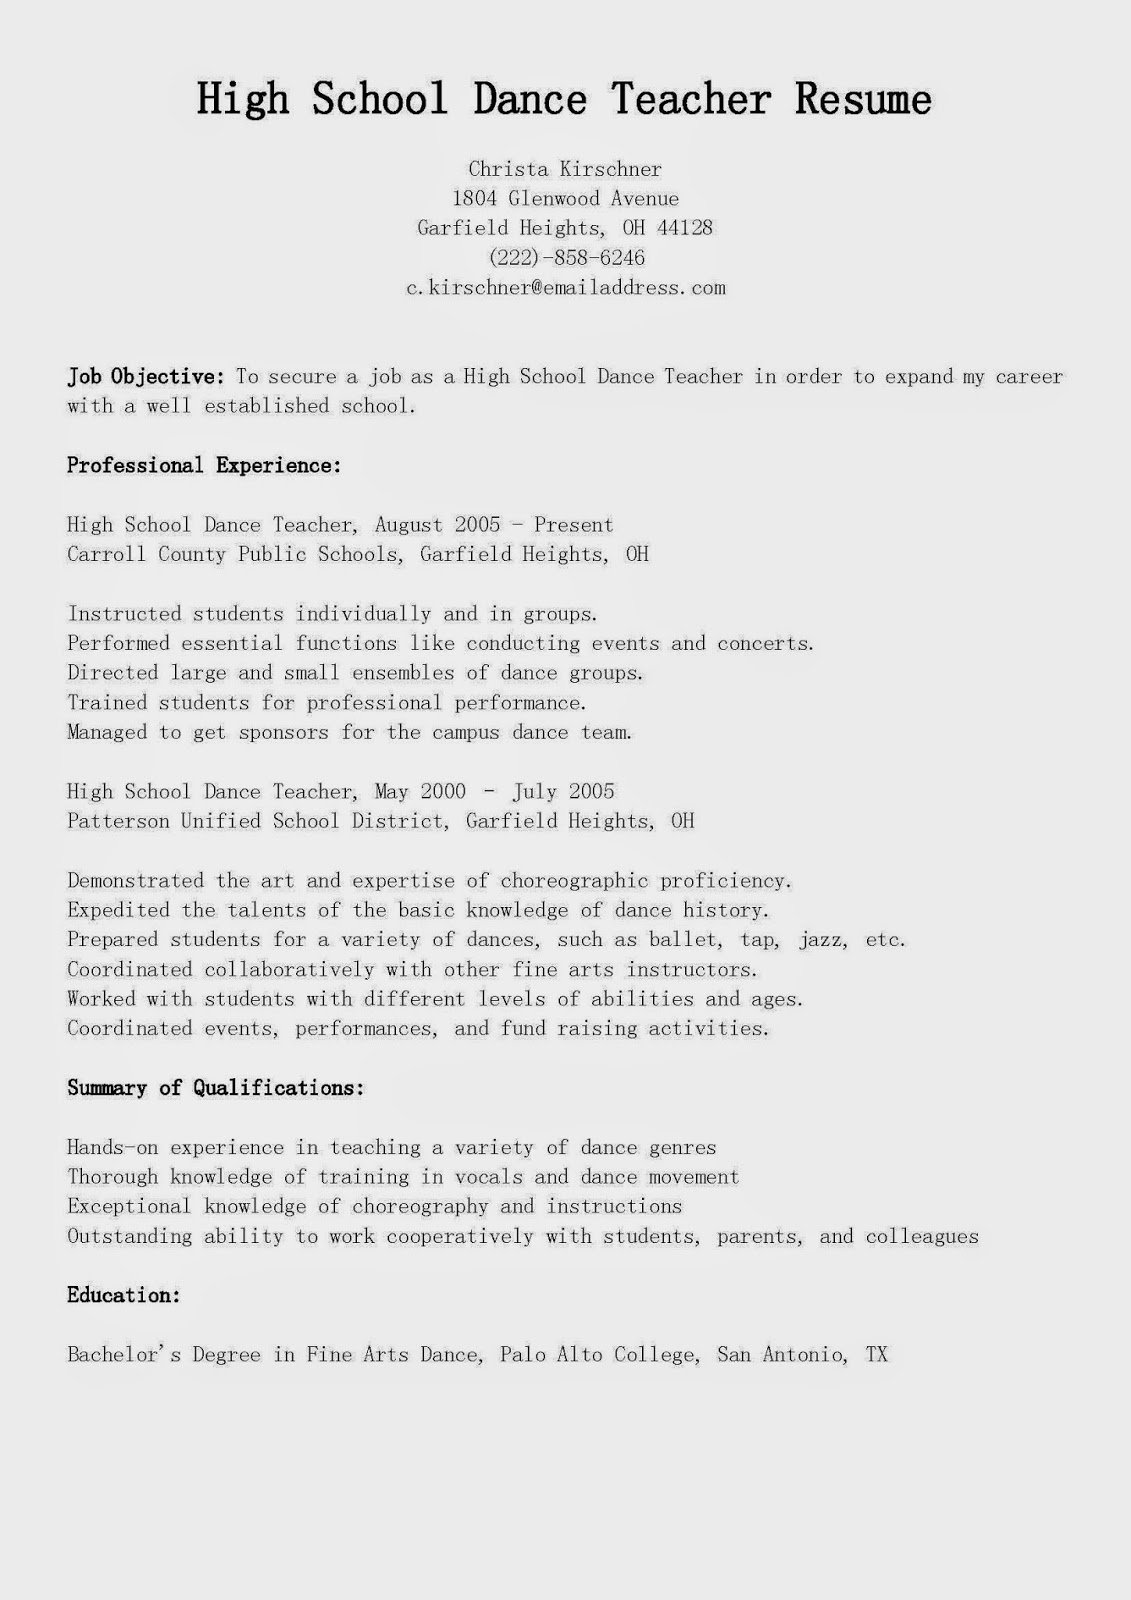 sample dance resume 16042017